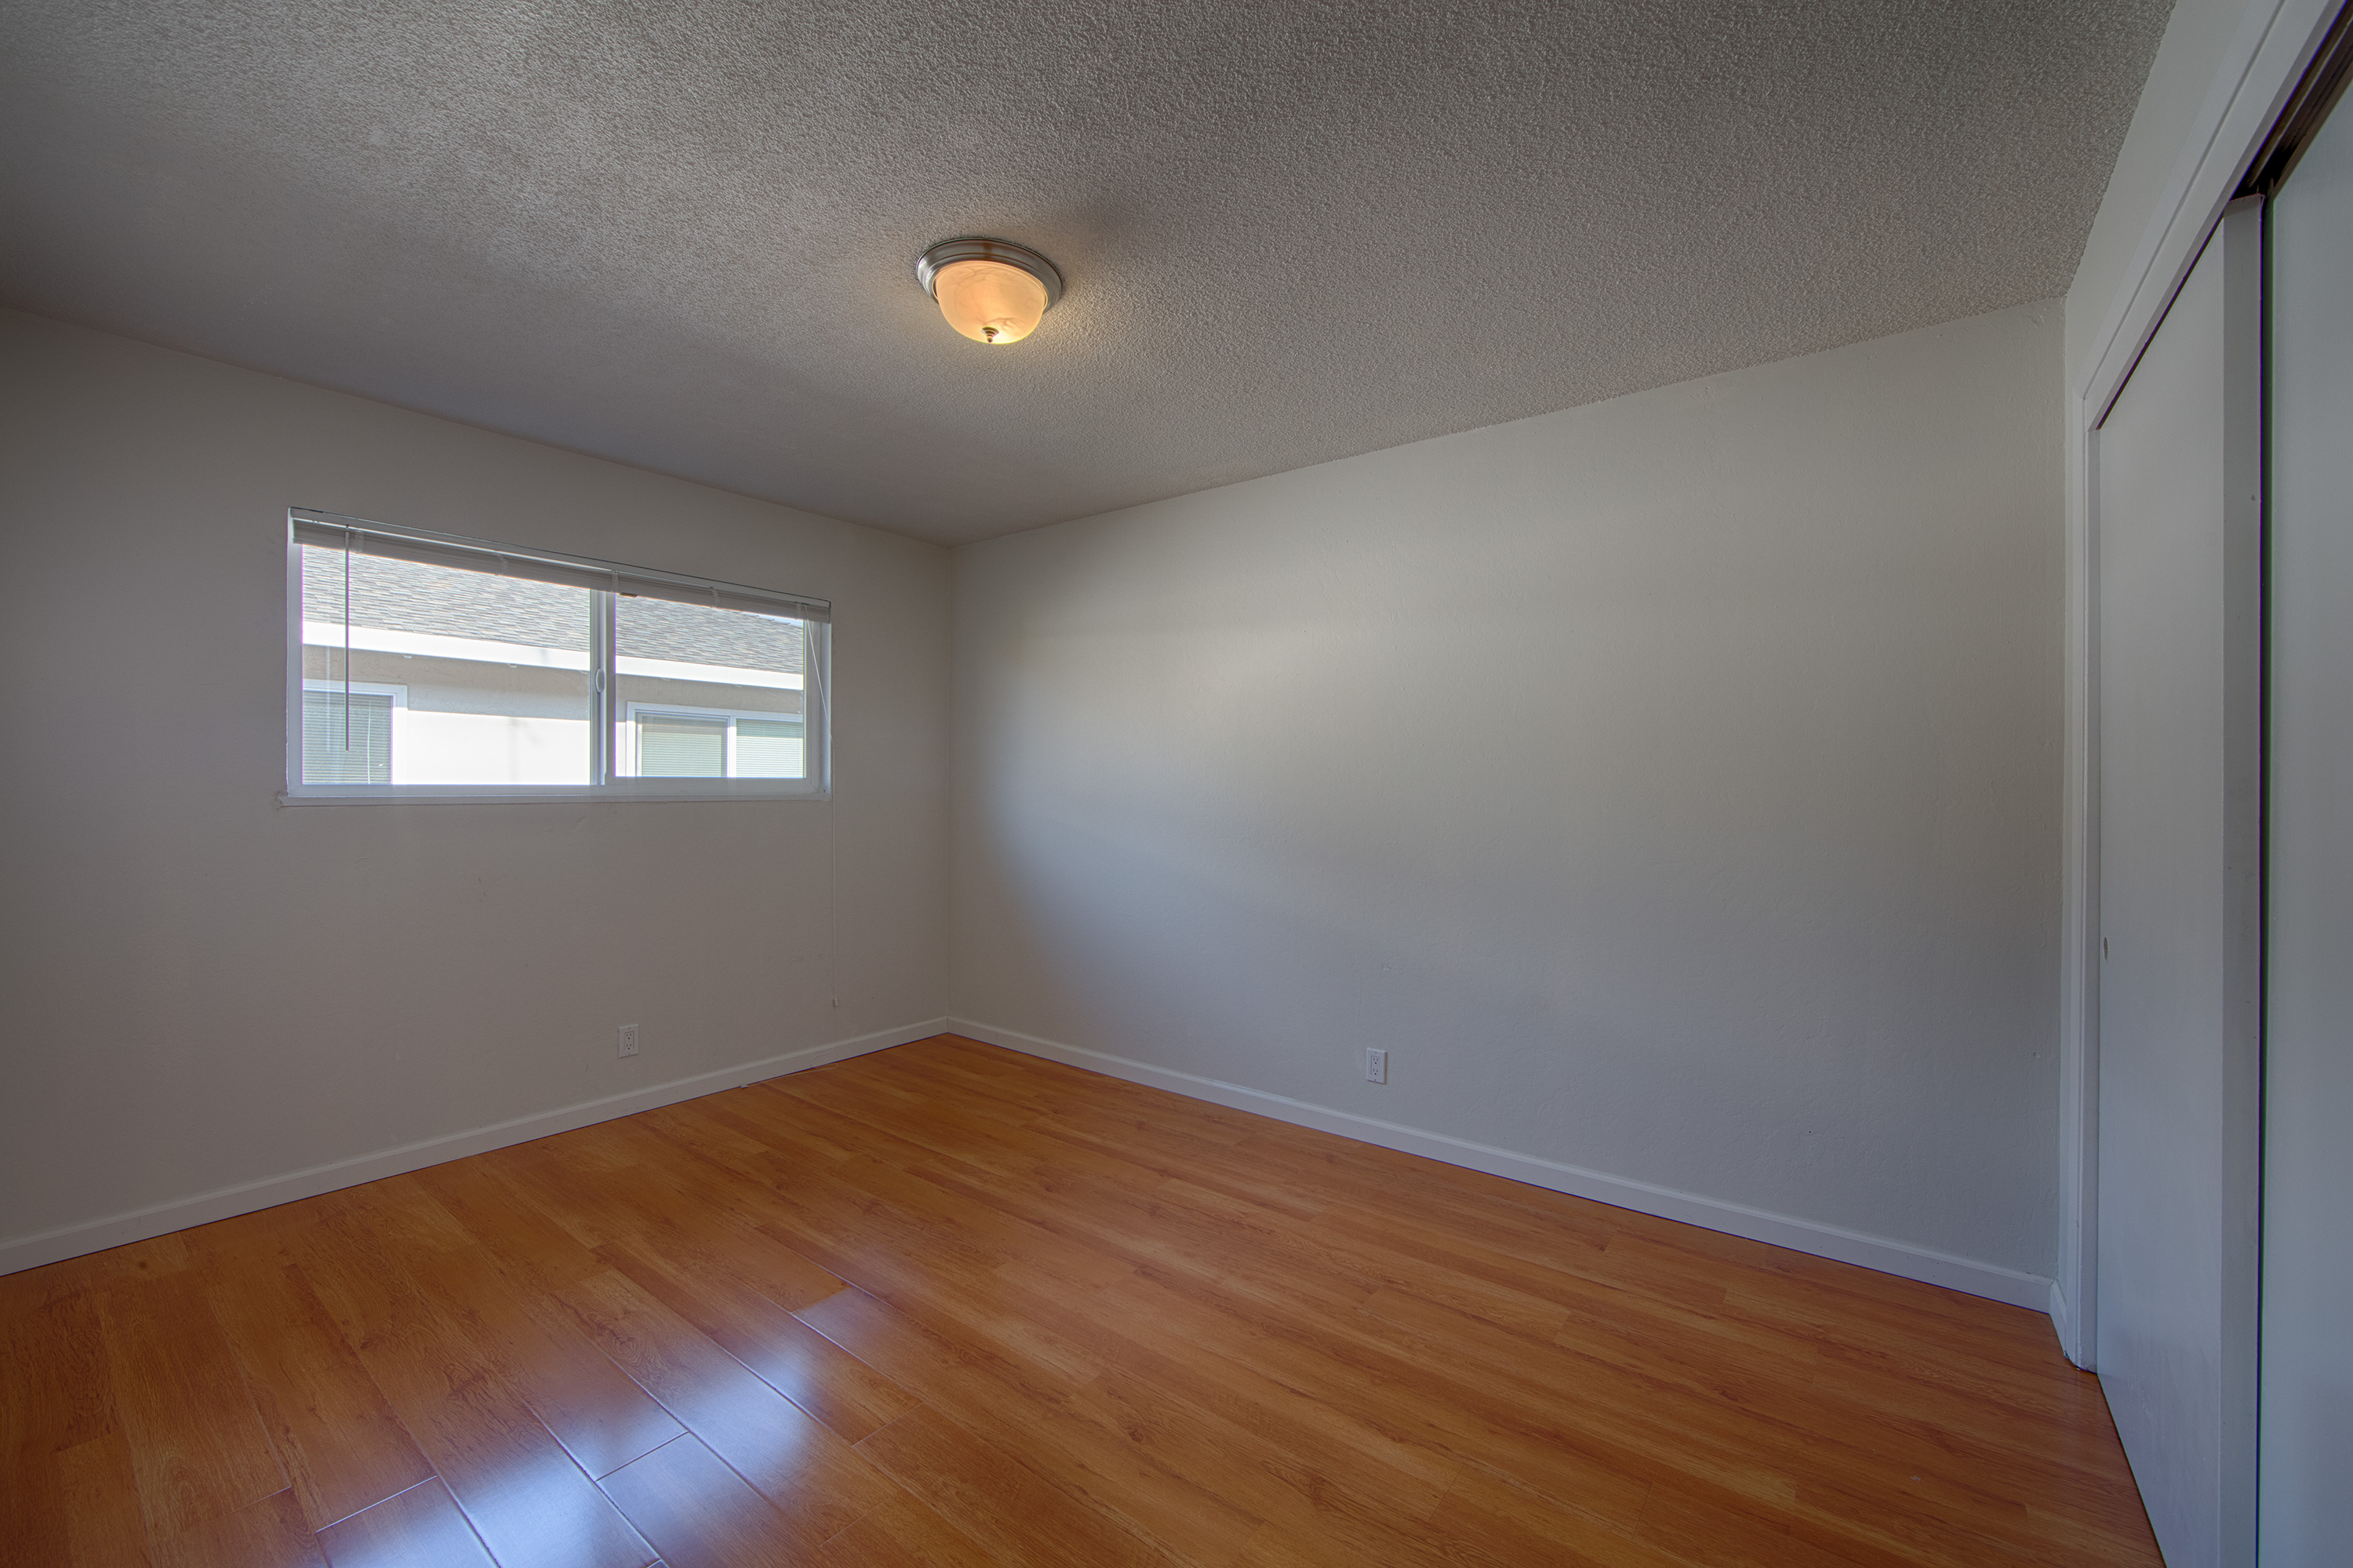 1662 Ontario Dr, Sunnyvale 94087 - Unit 3 Bedroom 1 (A)